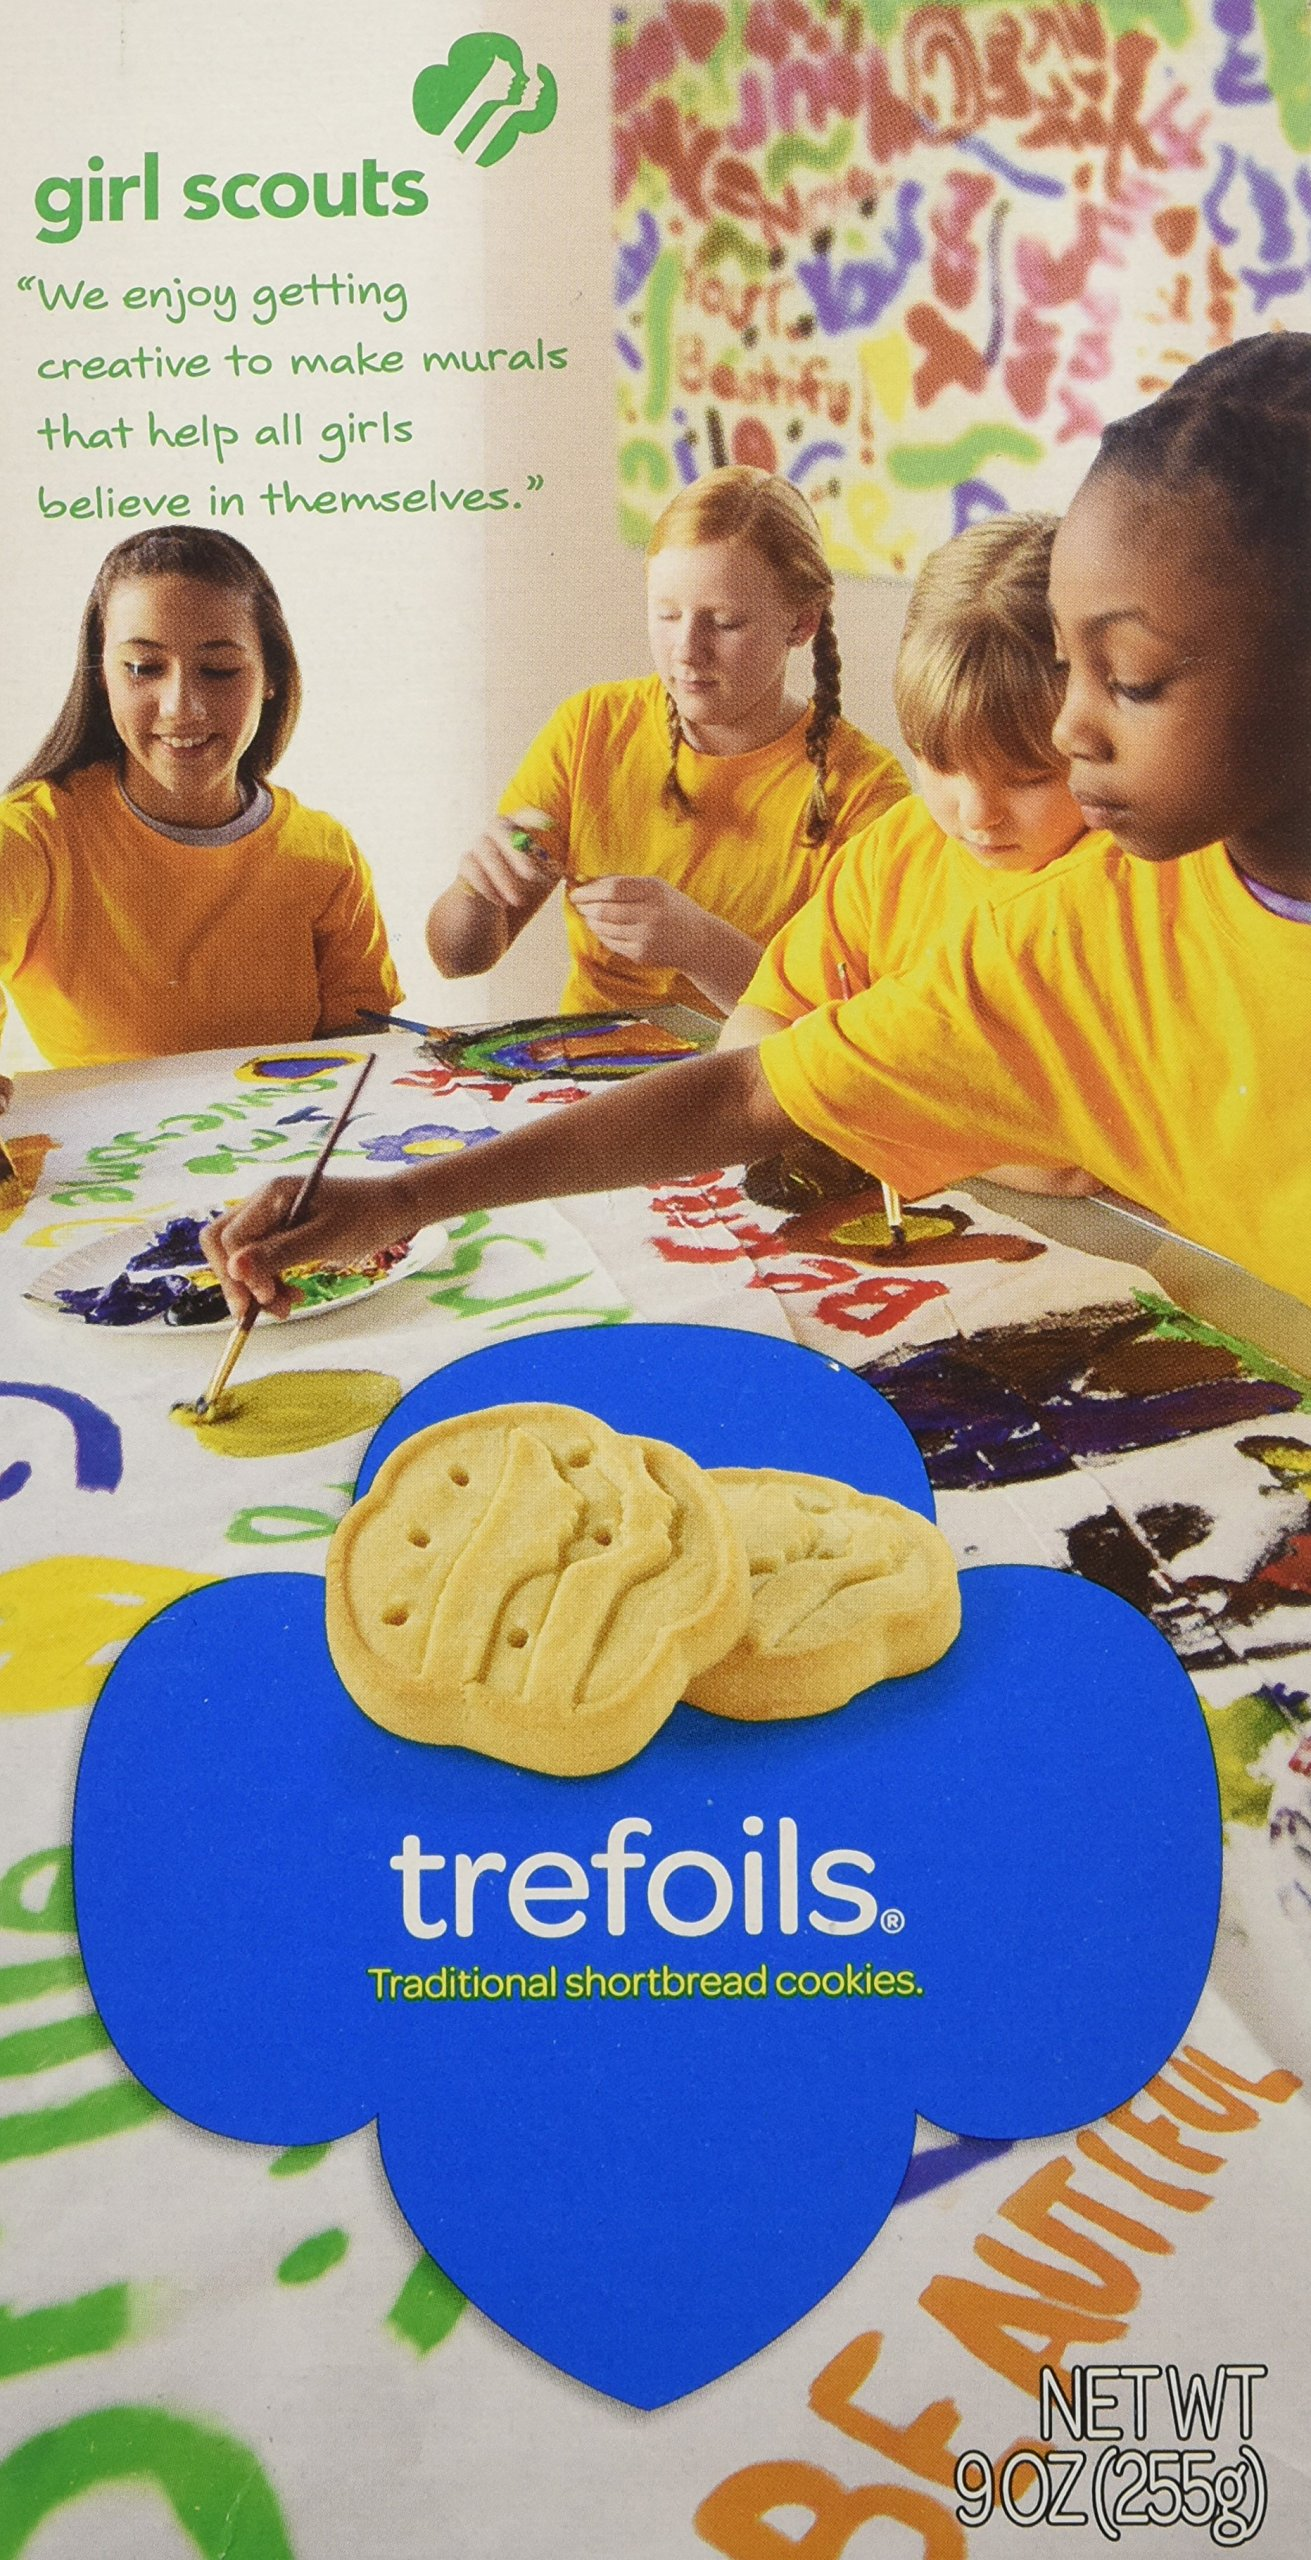 Girl Scout Cookies Trefoils A Traditional Shortbread Cookie - 1 Box of 36 Cookies